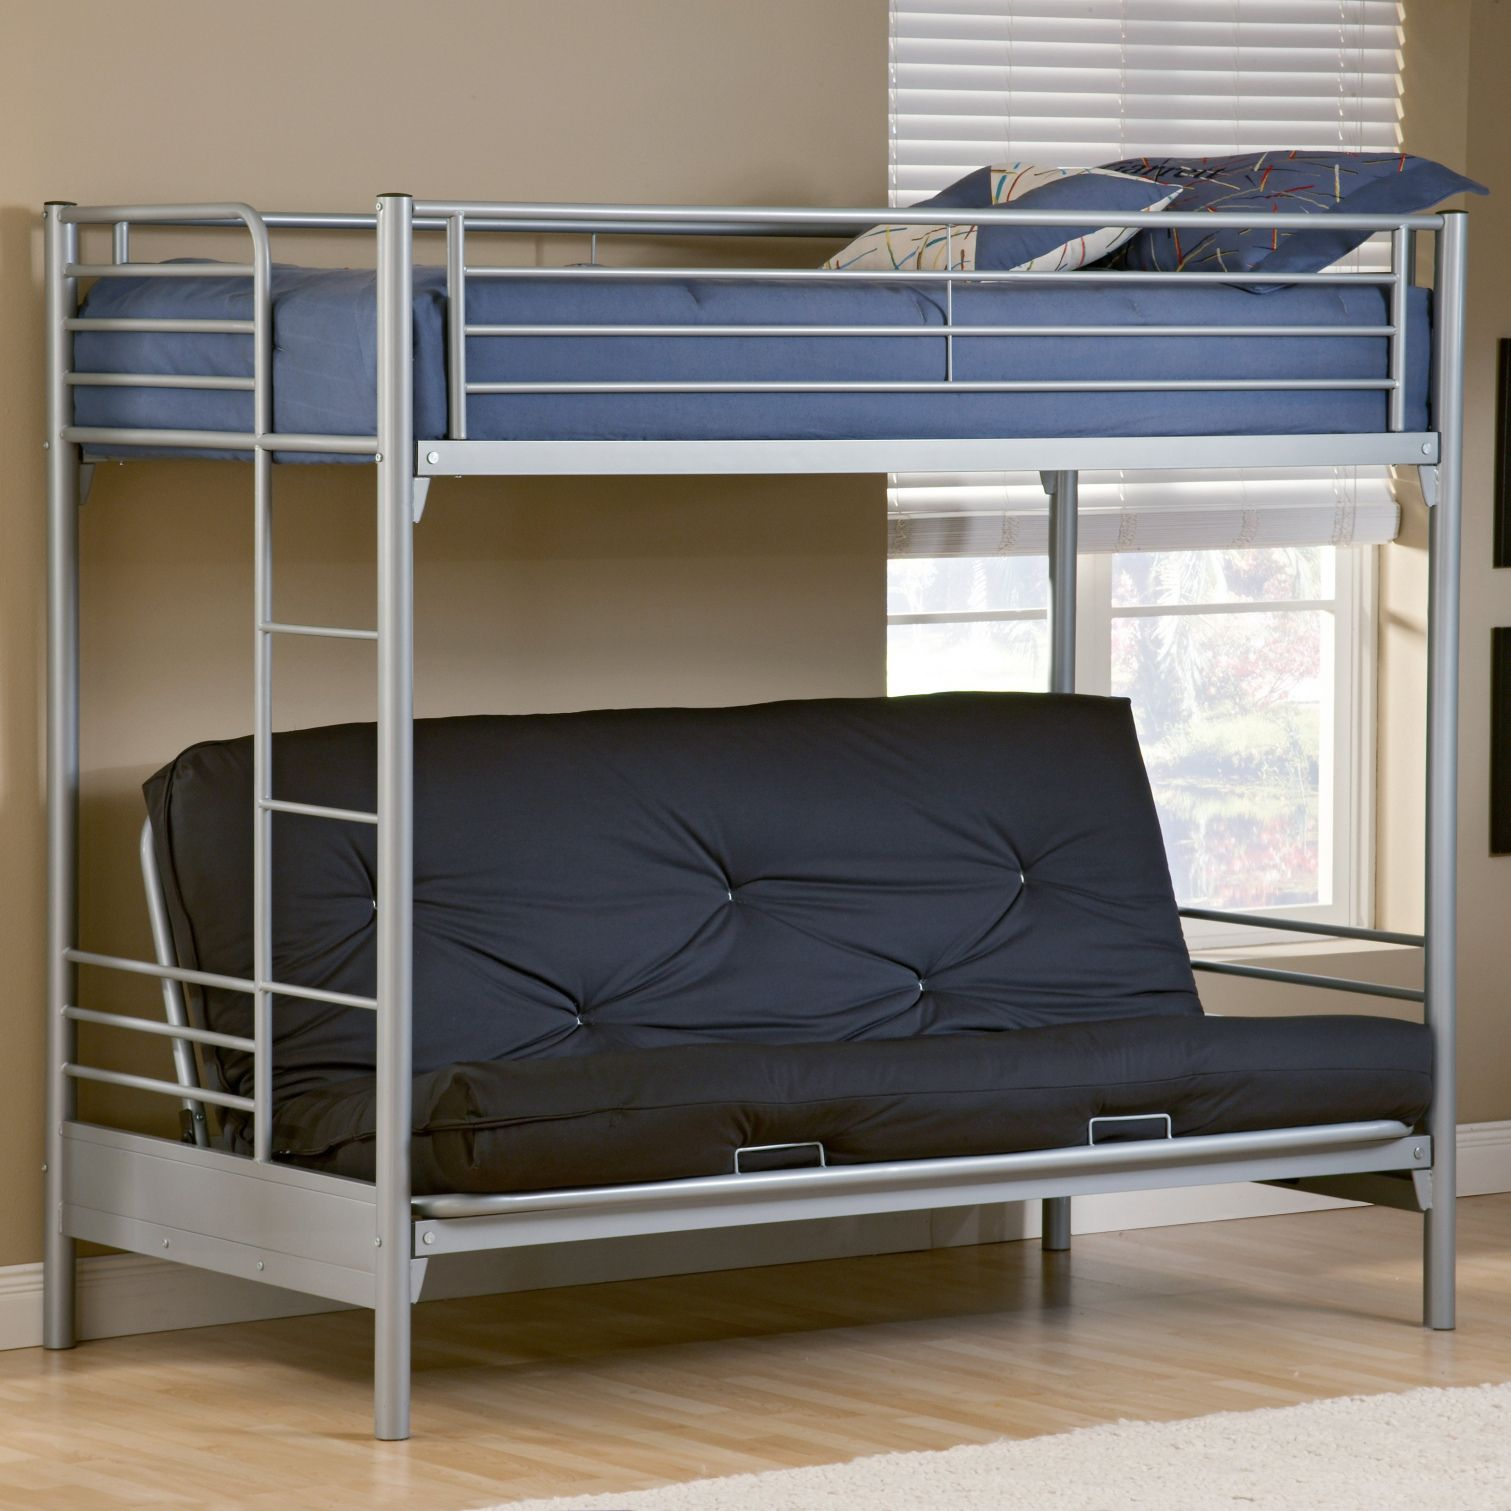 Bunk Bed With Futon Couch Best Interior Paint Brands Check More At Http